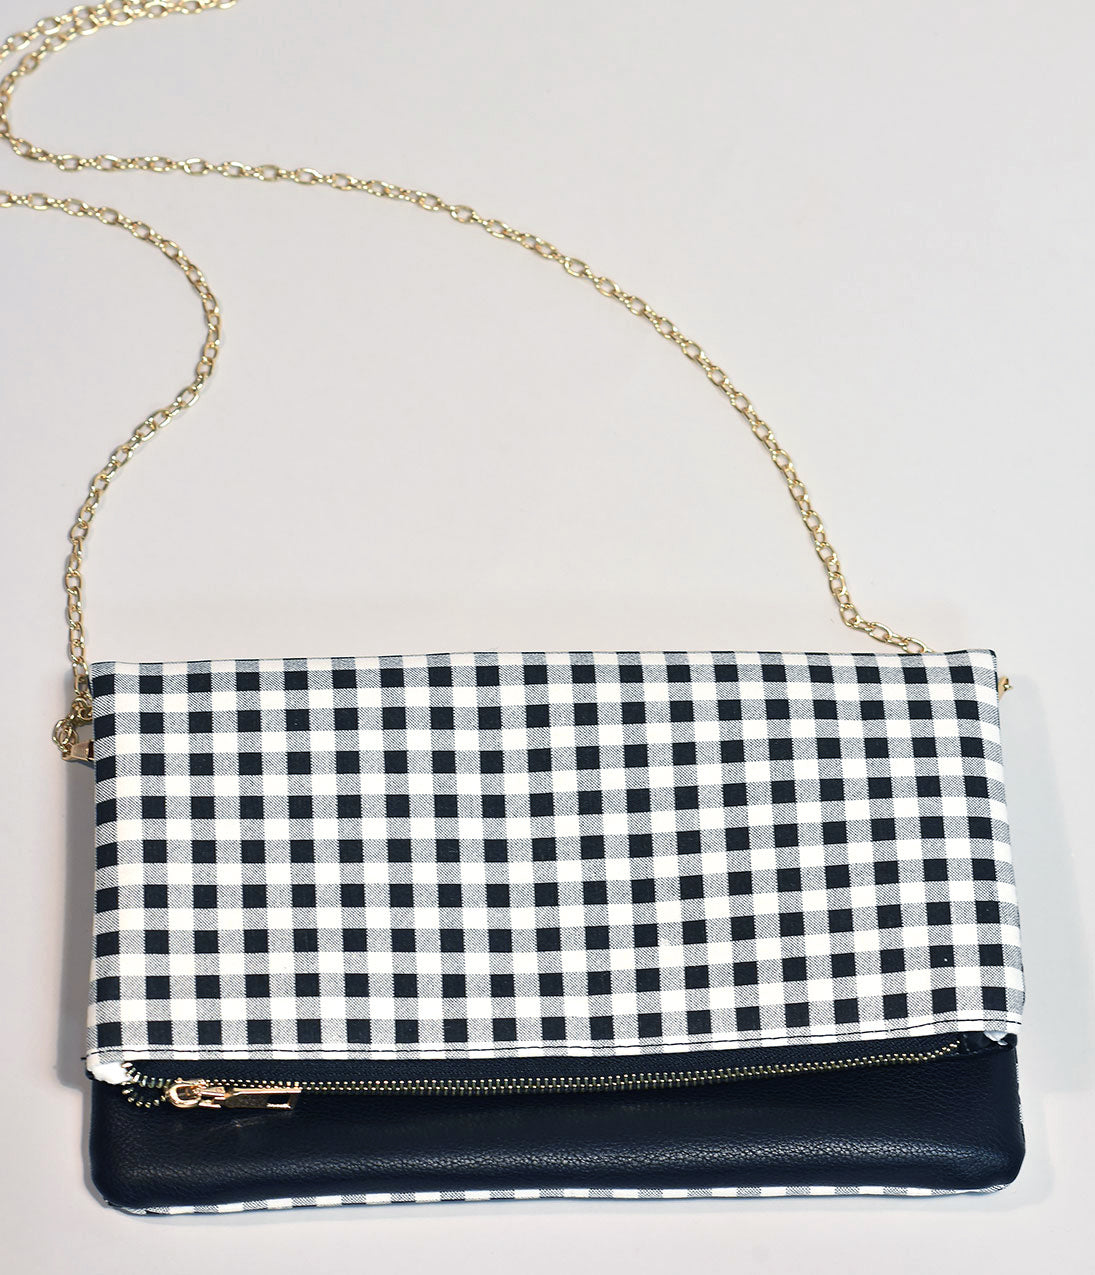 Vintage & Retro Handbags, Purses, Wallets, Bags Vintage Style Black  White Gingham Fold Over Clutch $38.00 AT vintagedancer.com